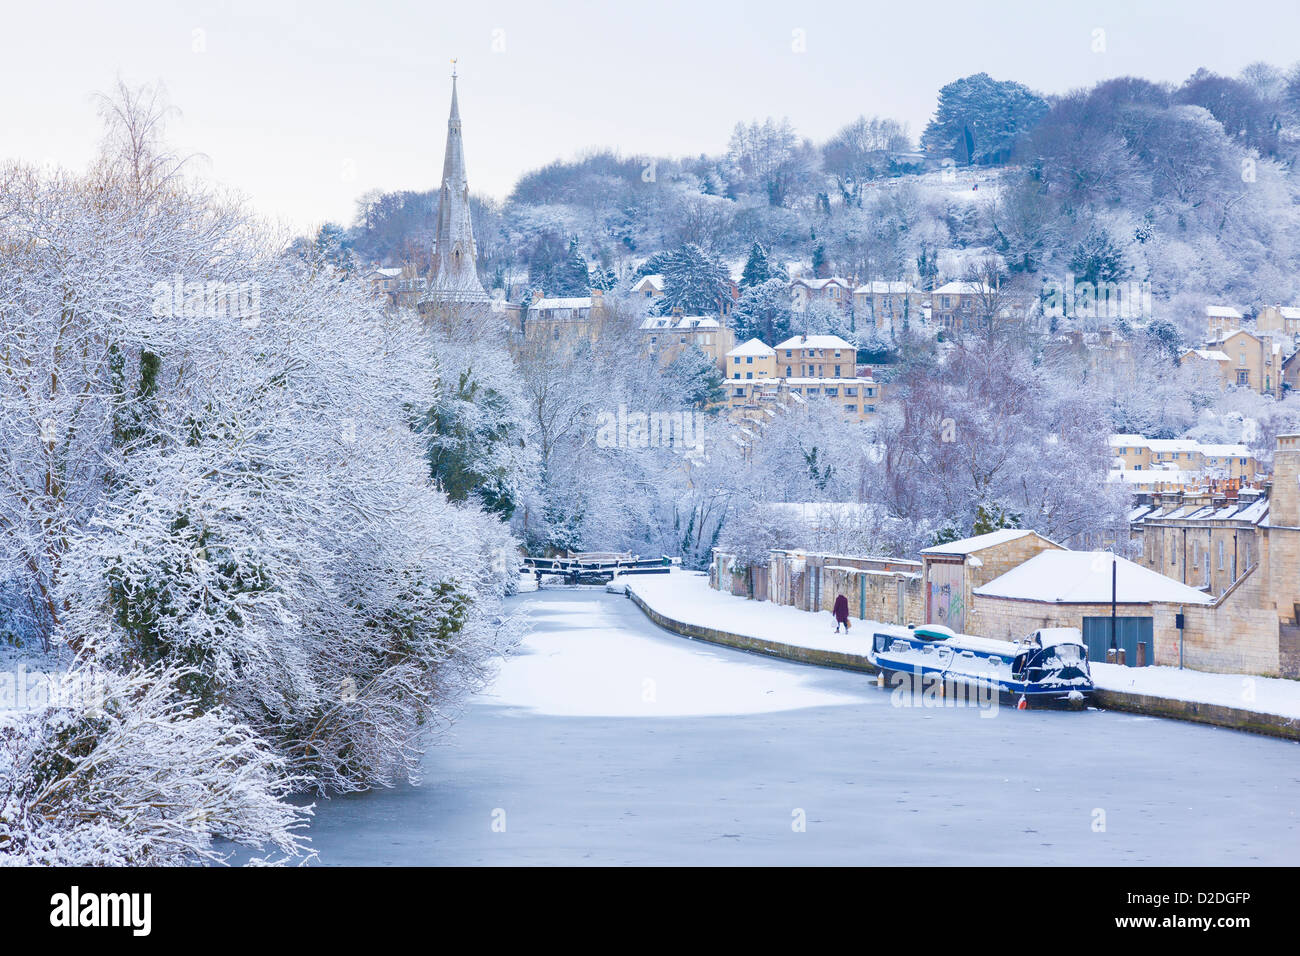 Winter scene with a frozen, snow covered canal in Bath, England. - Stock Image